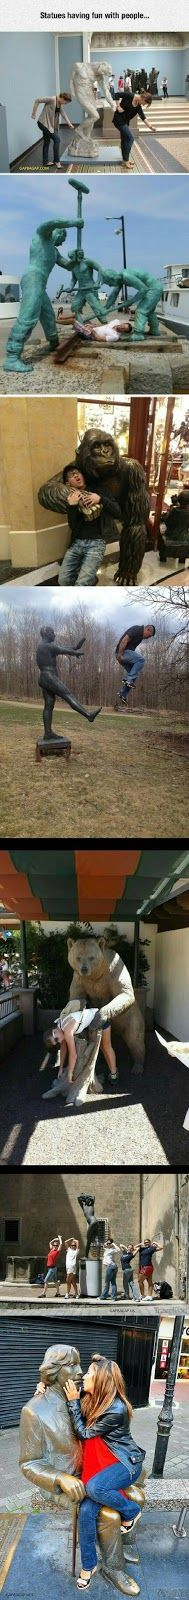 8+ Funny Pictures Of People Having Fun With Statues